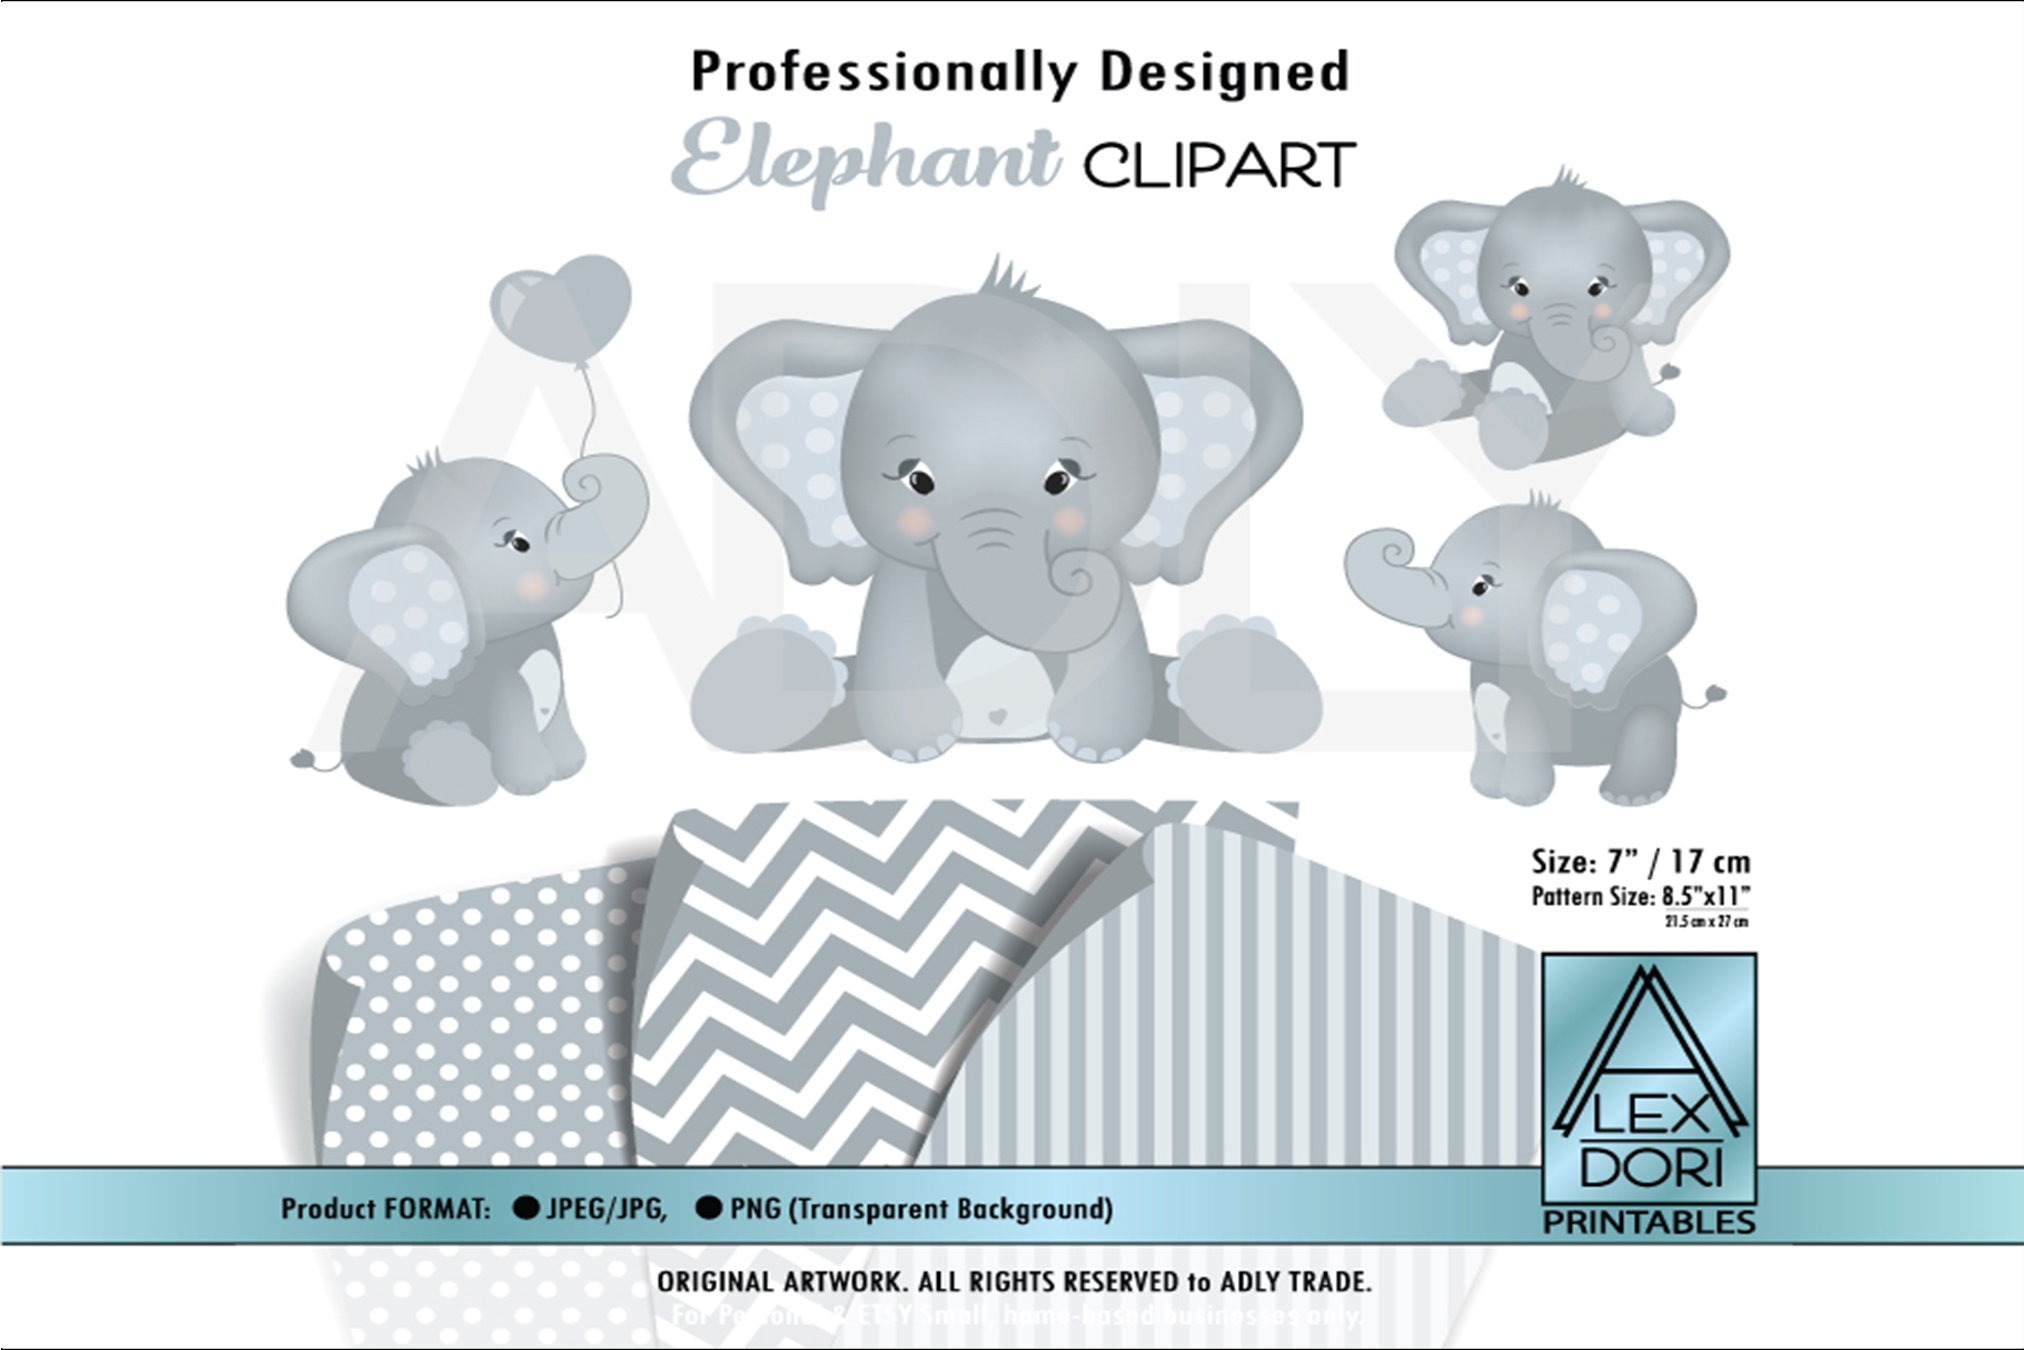 Gray Baby Cute Elephant with Adorable Poses in Clip Art.